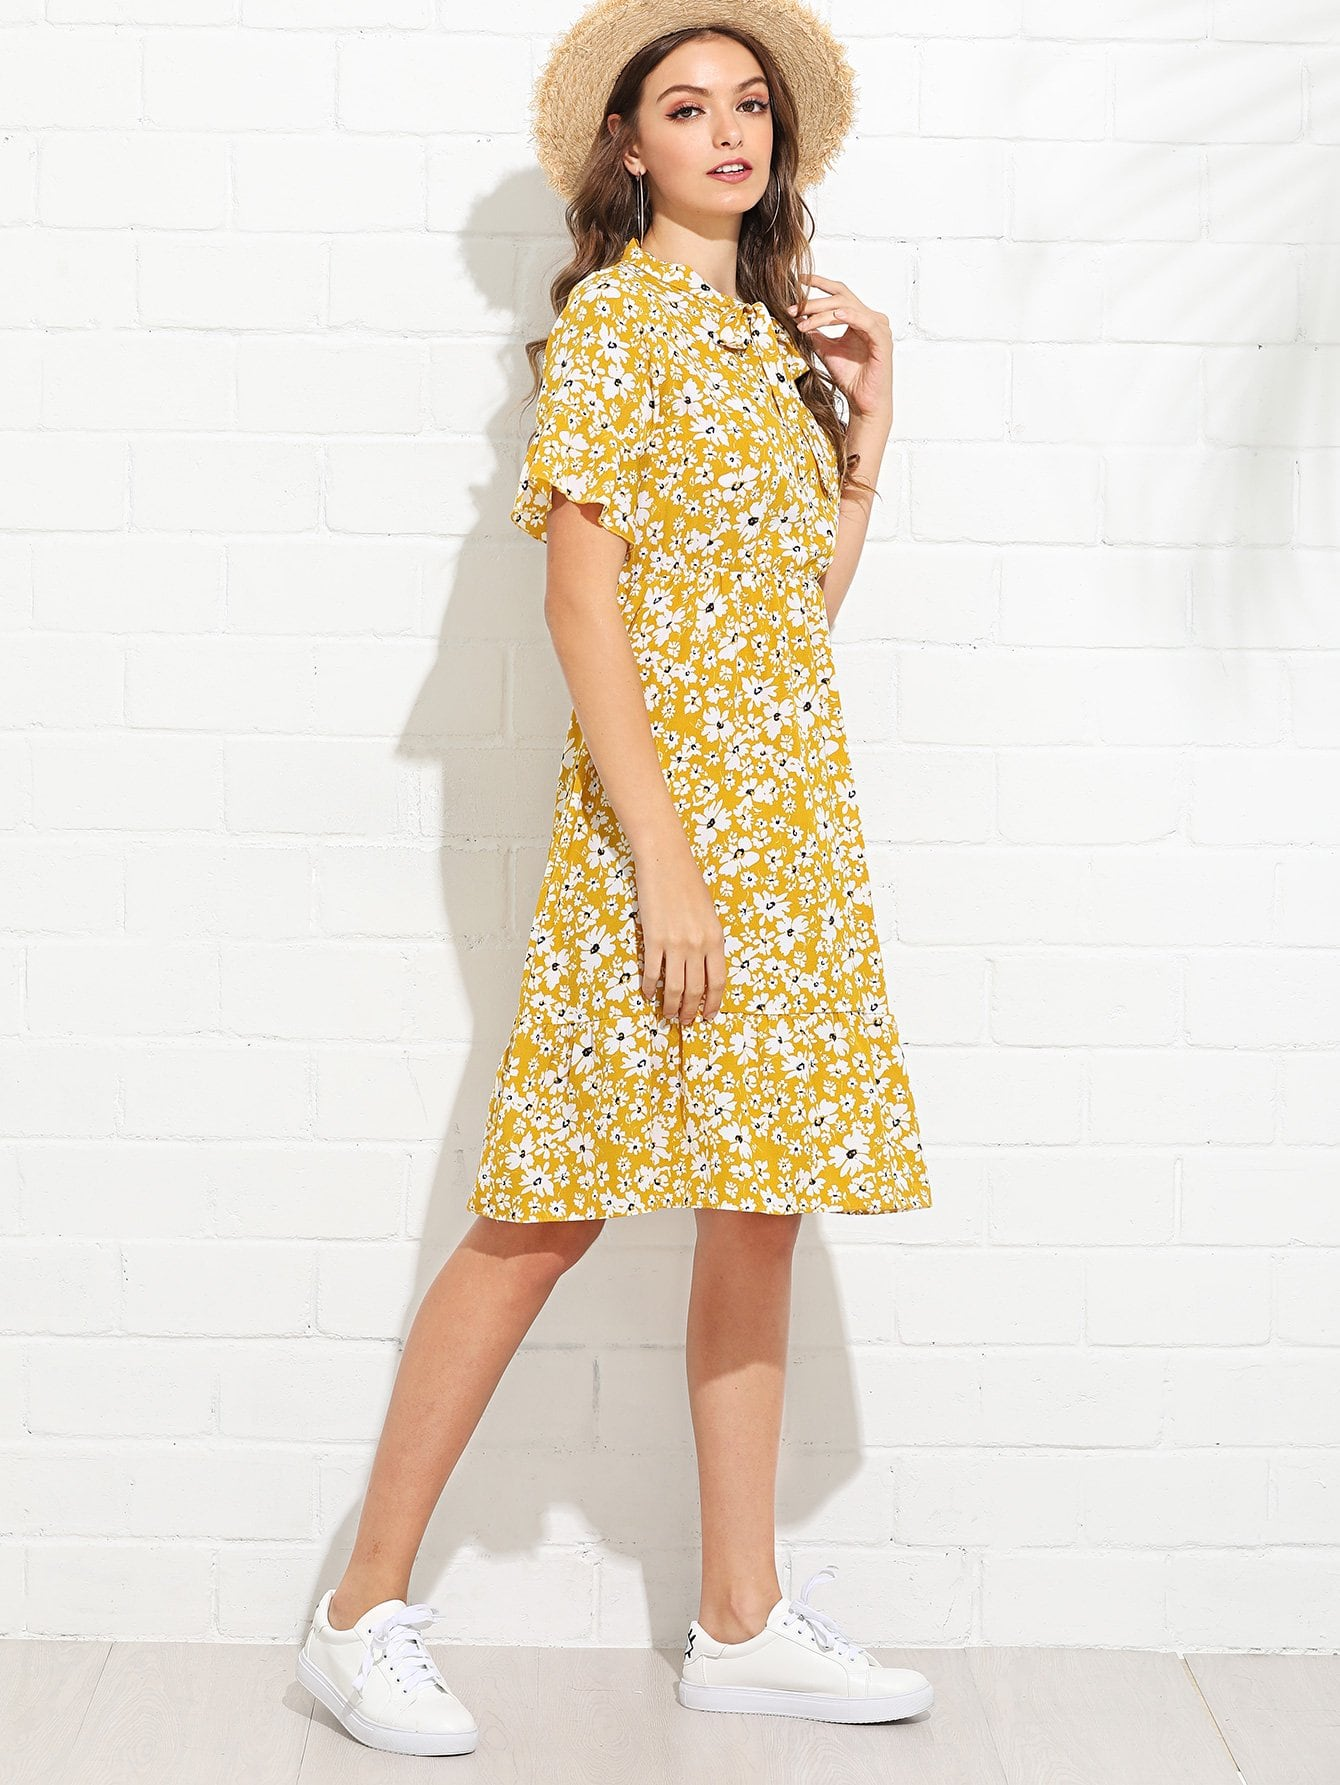 babbe1992d97 SheInOutlet.com - Women's Fashion Sale at Special Prices